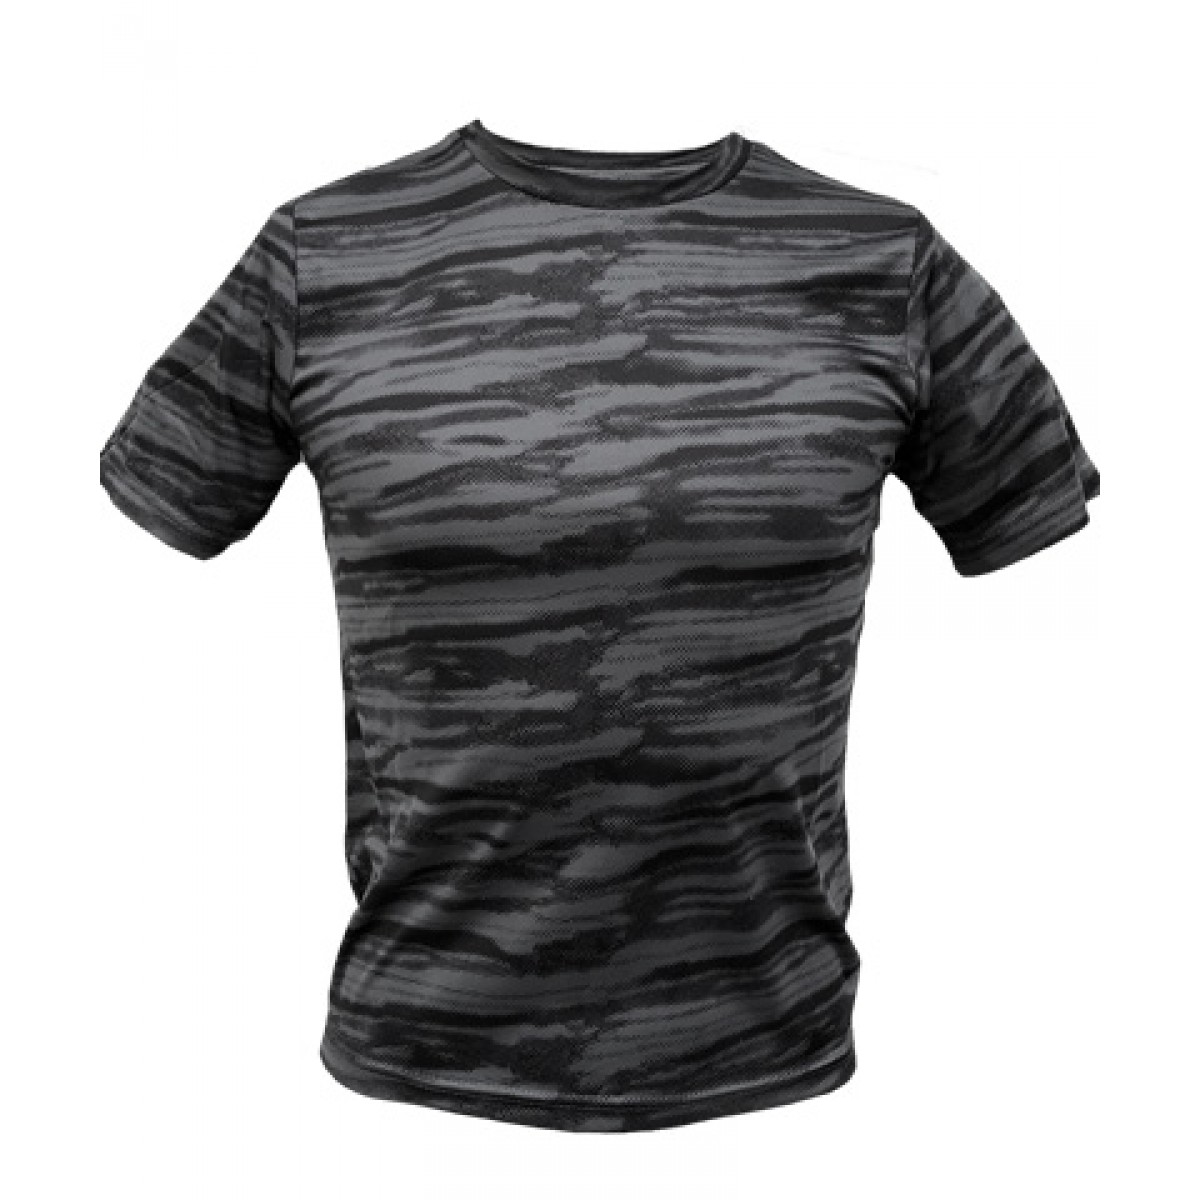 Dark Gray Camo Short Sleeve